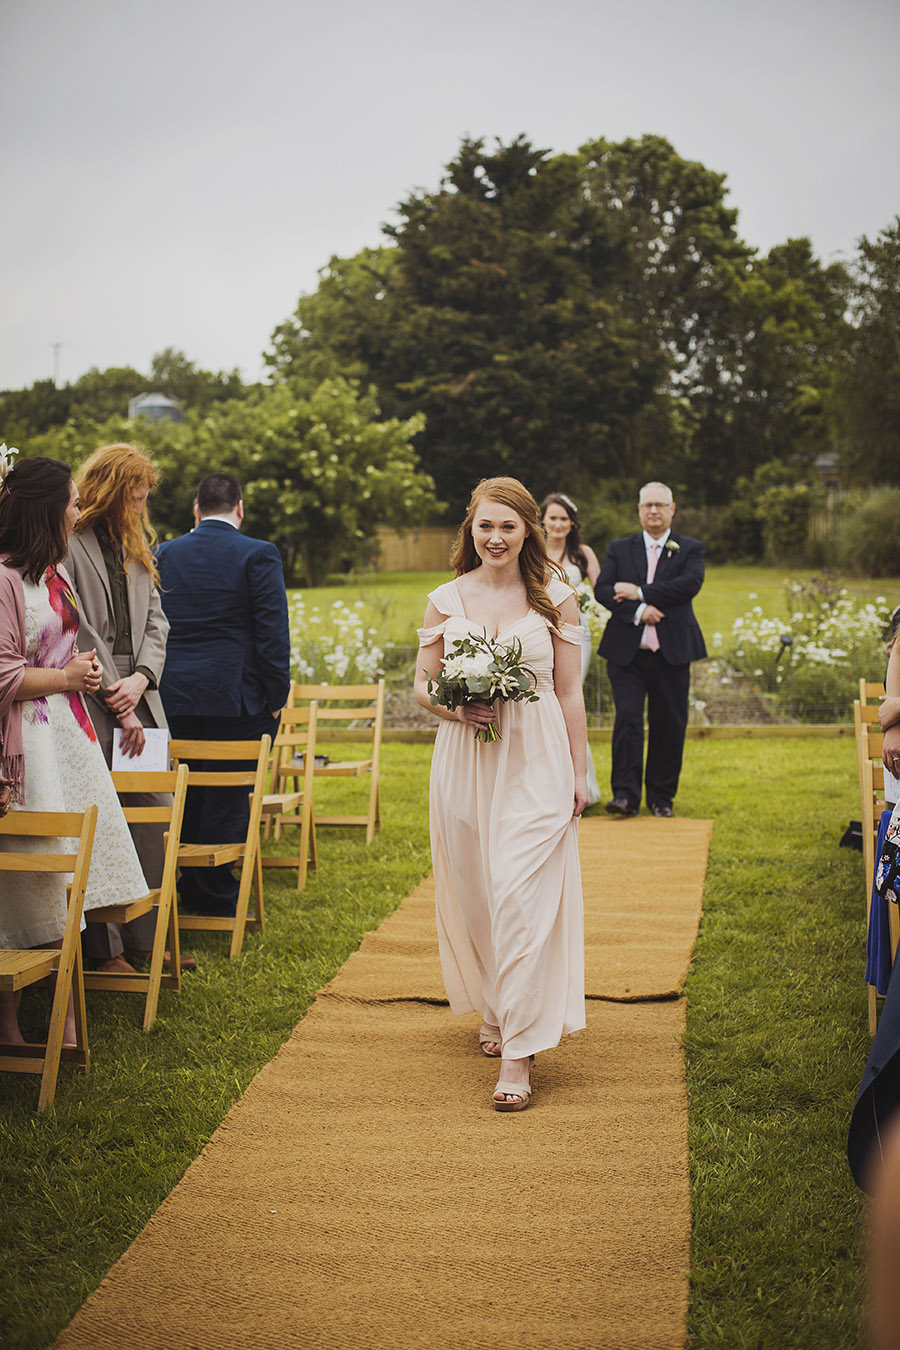 Relaxed outdoor wedding at Cott Farm Barn with images by Heather Birnie Photography on the English Wedding Blog (16)